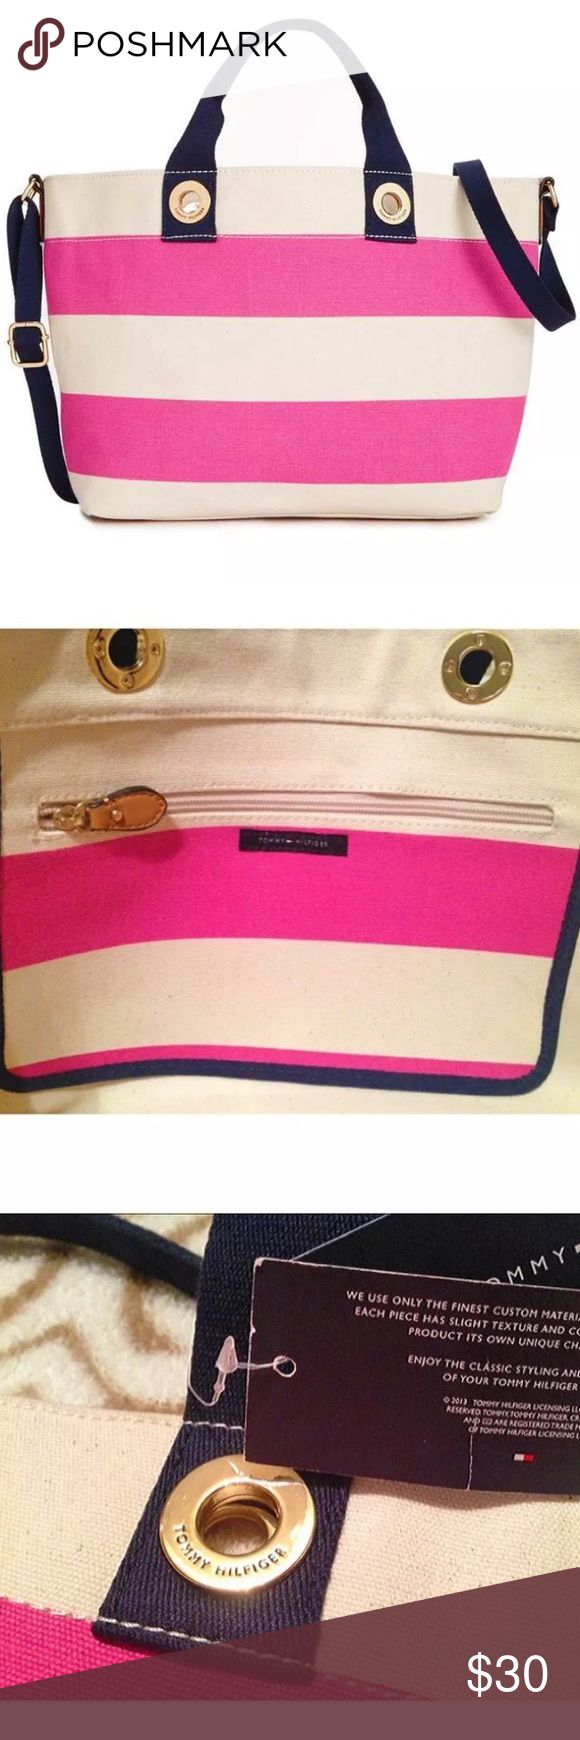 "Tommy Hilfiger Rugby Stripe Medium Tote Canvas Bag Gorgeous Tommy Hilfiger Grommets Woven Rugby Stripe Medium Tote Canvas Bag  Condition: New without tags. Clean inside & out from smoke-free home.  Raspberry pink & cream stripes with navy handles. Grommet detail logo. 1 zippered pocket inside. Great open closure everyday bag, school, work or over night bag. Big enough for laptop, change of clothes & everyday electronics/necessities. Great for beach as well. Thick canvas is sturdy.  H: 10"" x…"